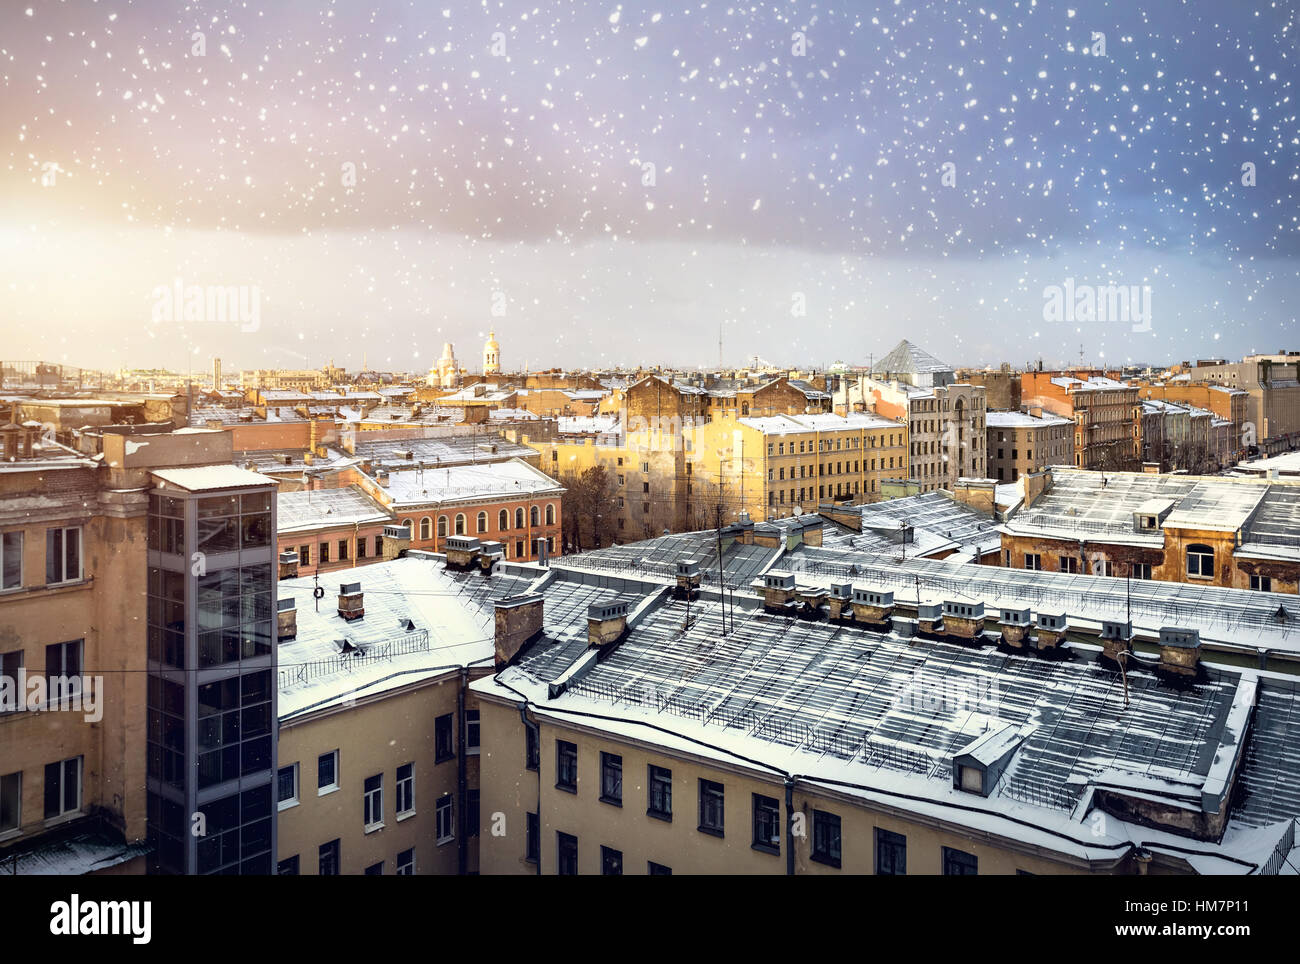 Panoramic view old buildings from the roof at snow fall at sunset in Saint Petersburg, Russia - Stock Image